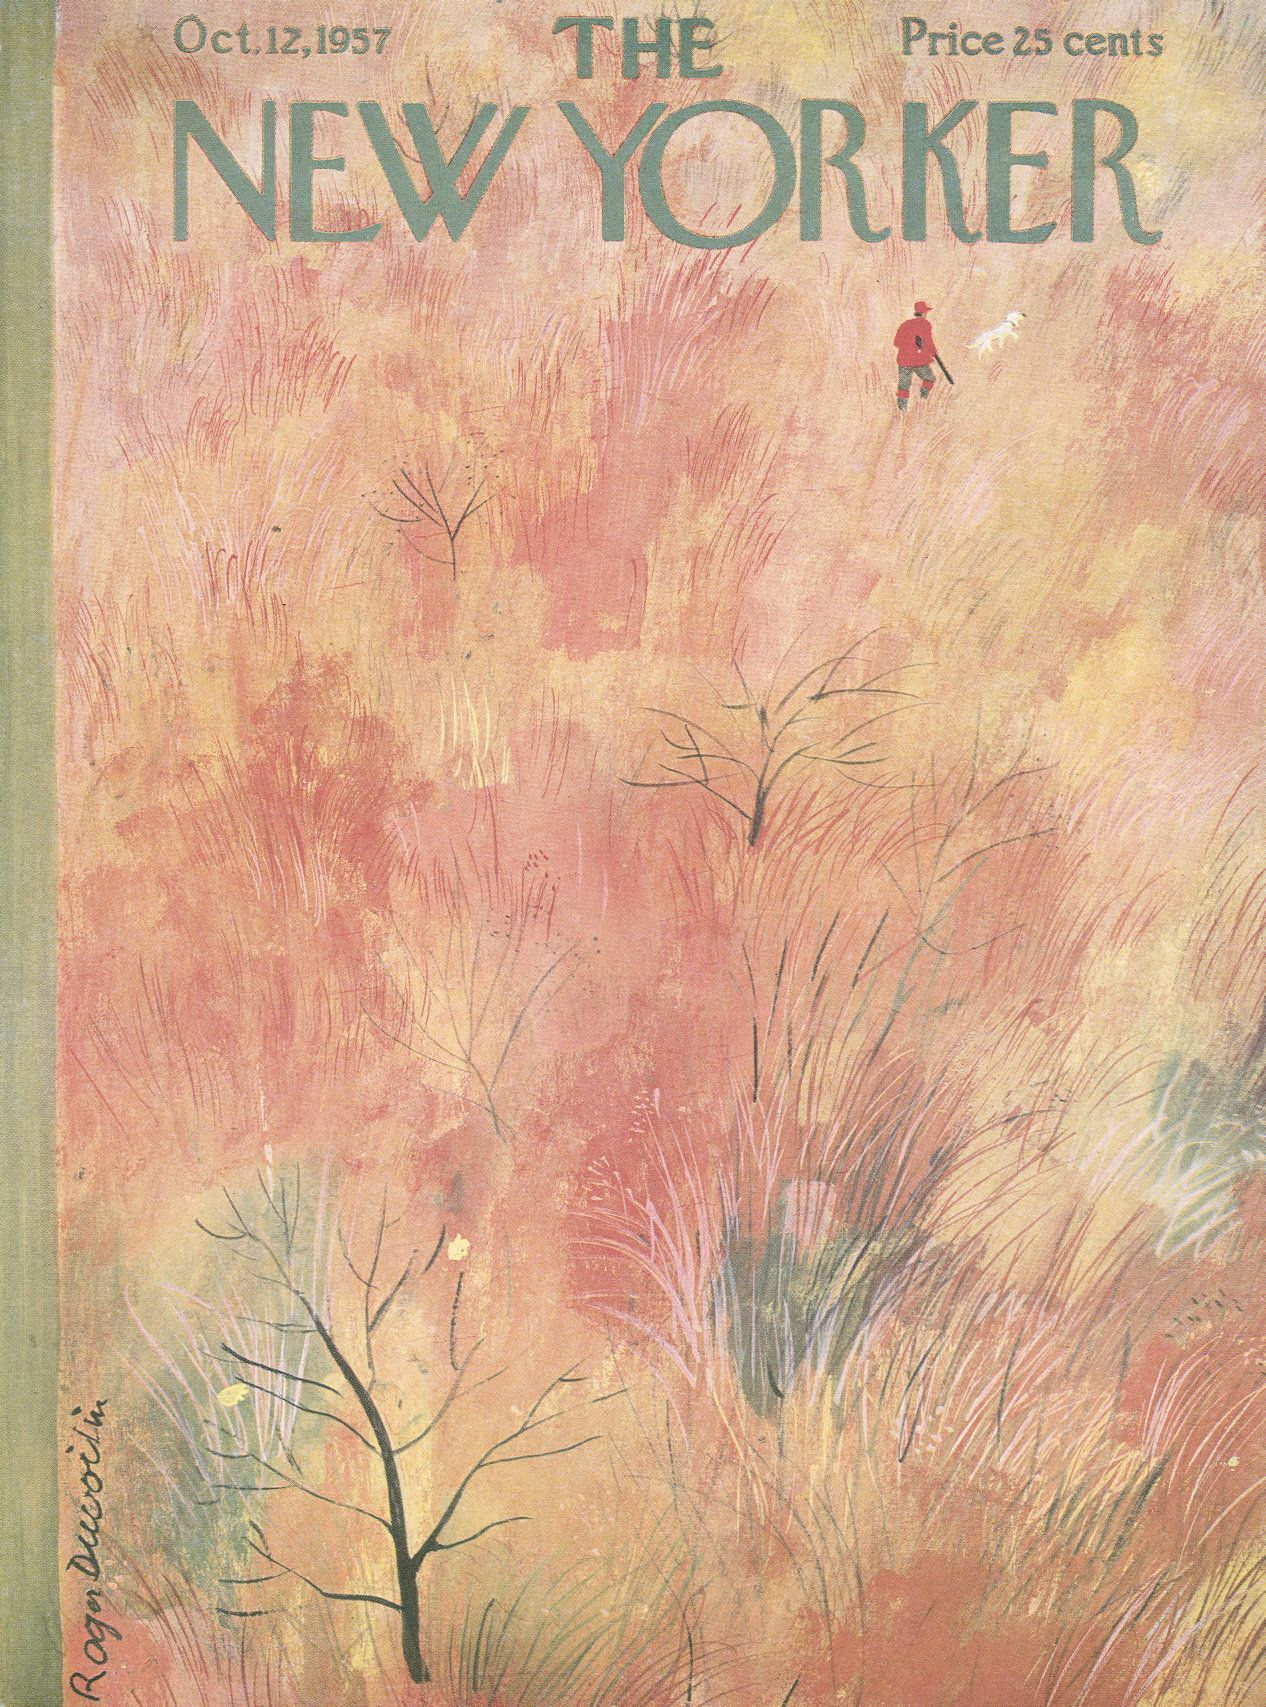 The New Yorker - Saturday, October 12, 1957 - Issue # 1704 - Vol. 33 - N° 34 - Cover by : Roger Duvoisin